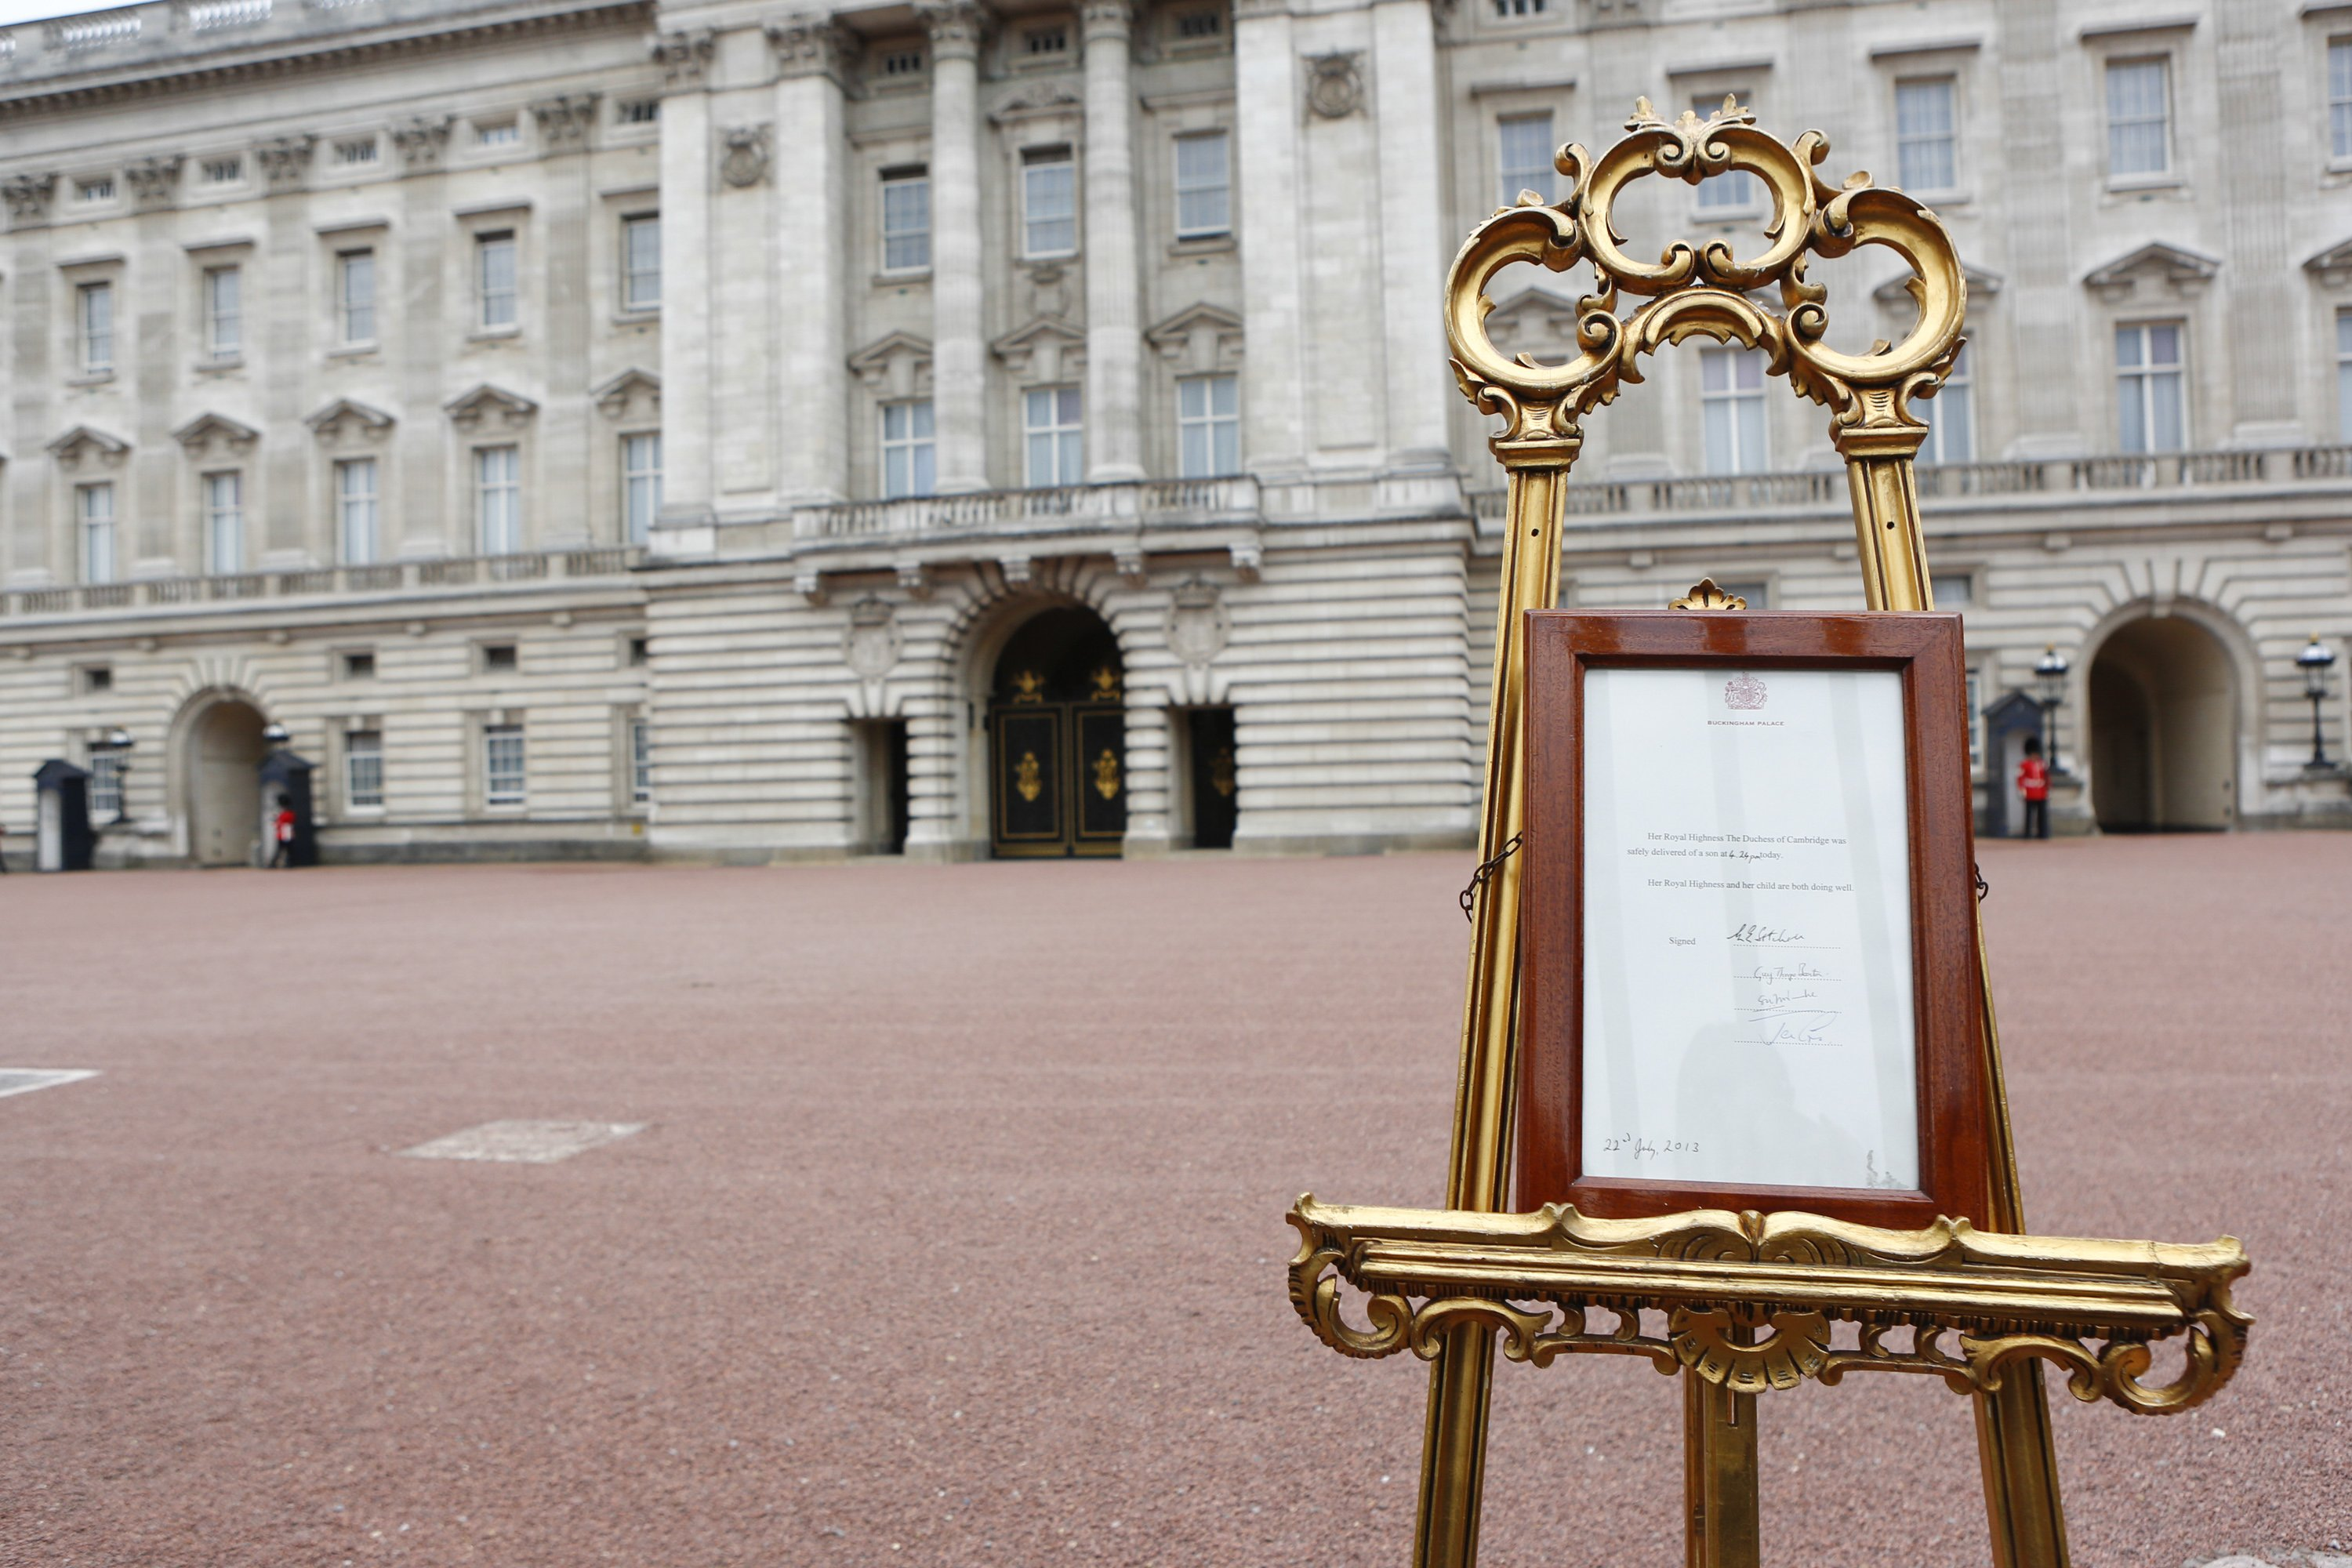 Reporting from Buckingham Palace